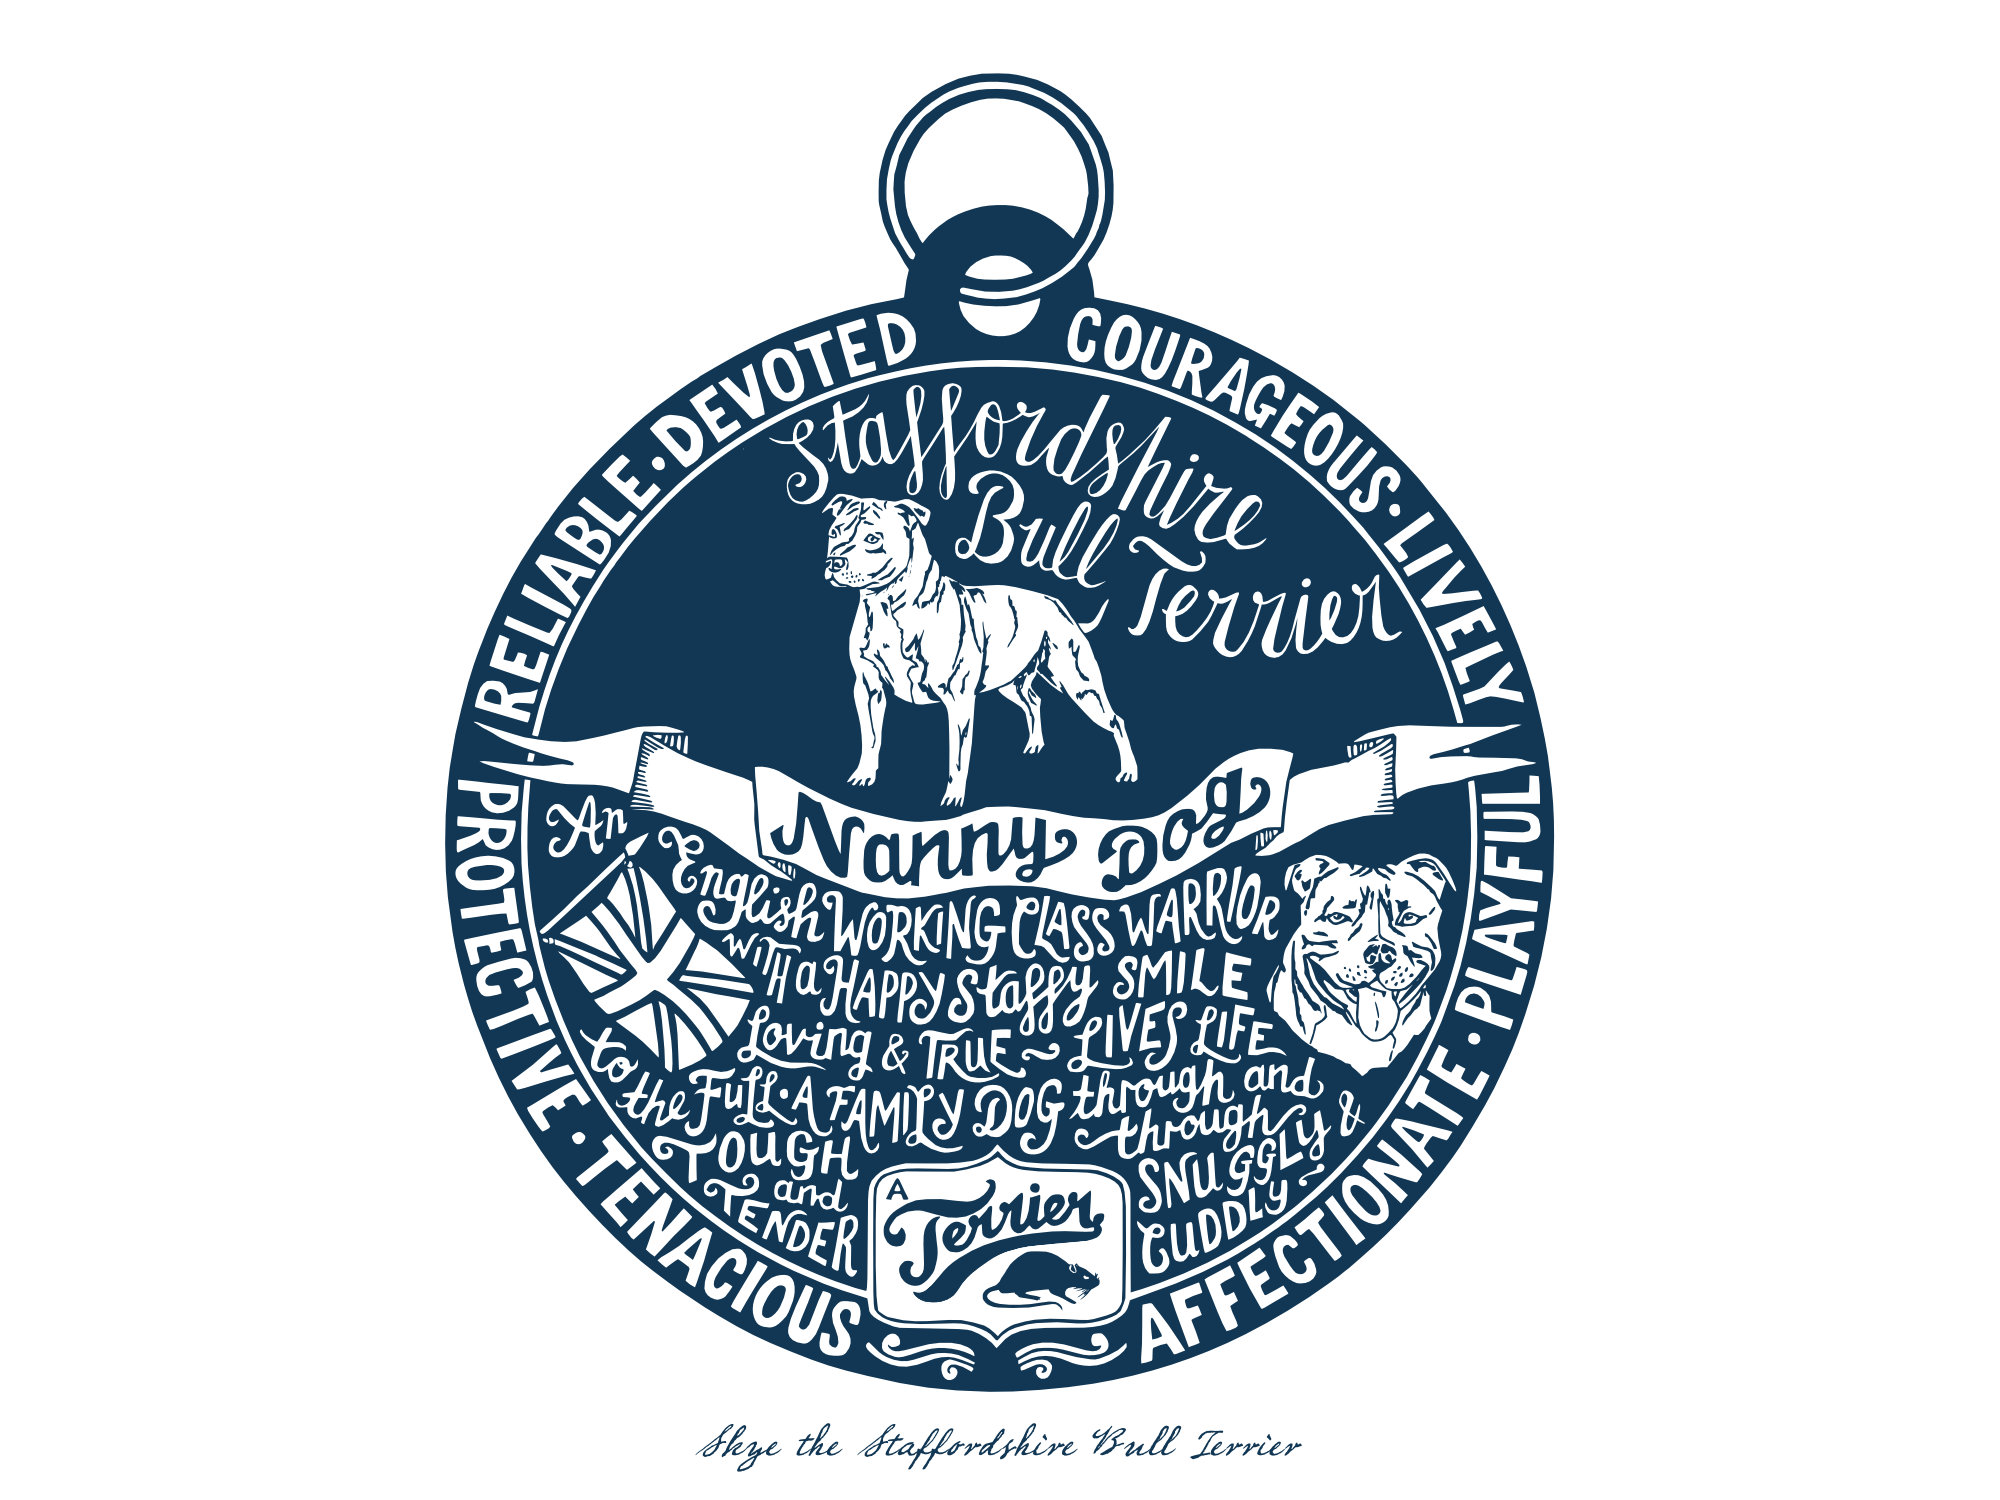 Staffordshire bull terrier prints - Hand lettering & Illustration by Debbie Kendall